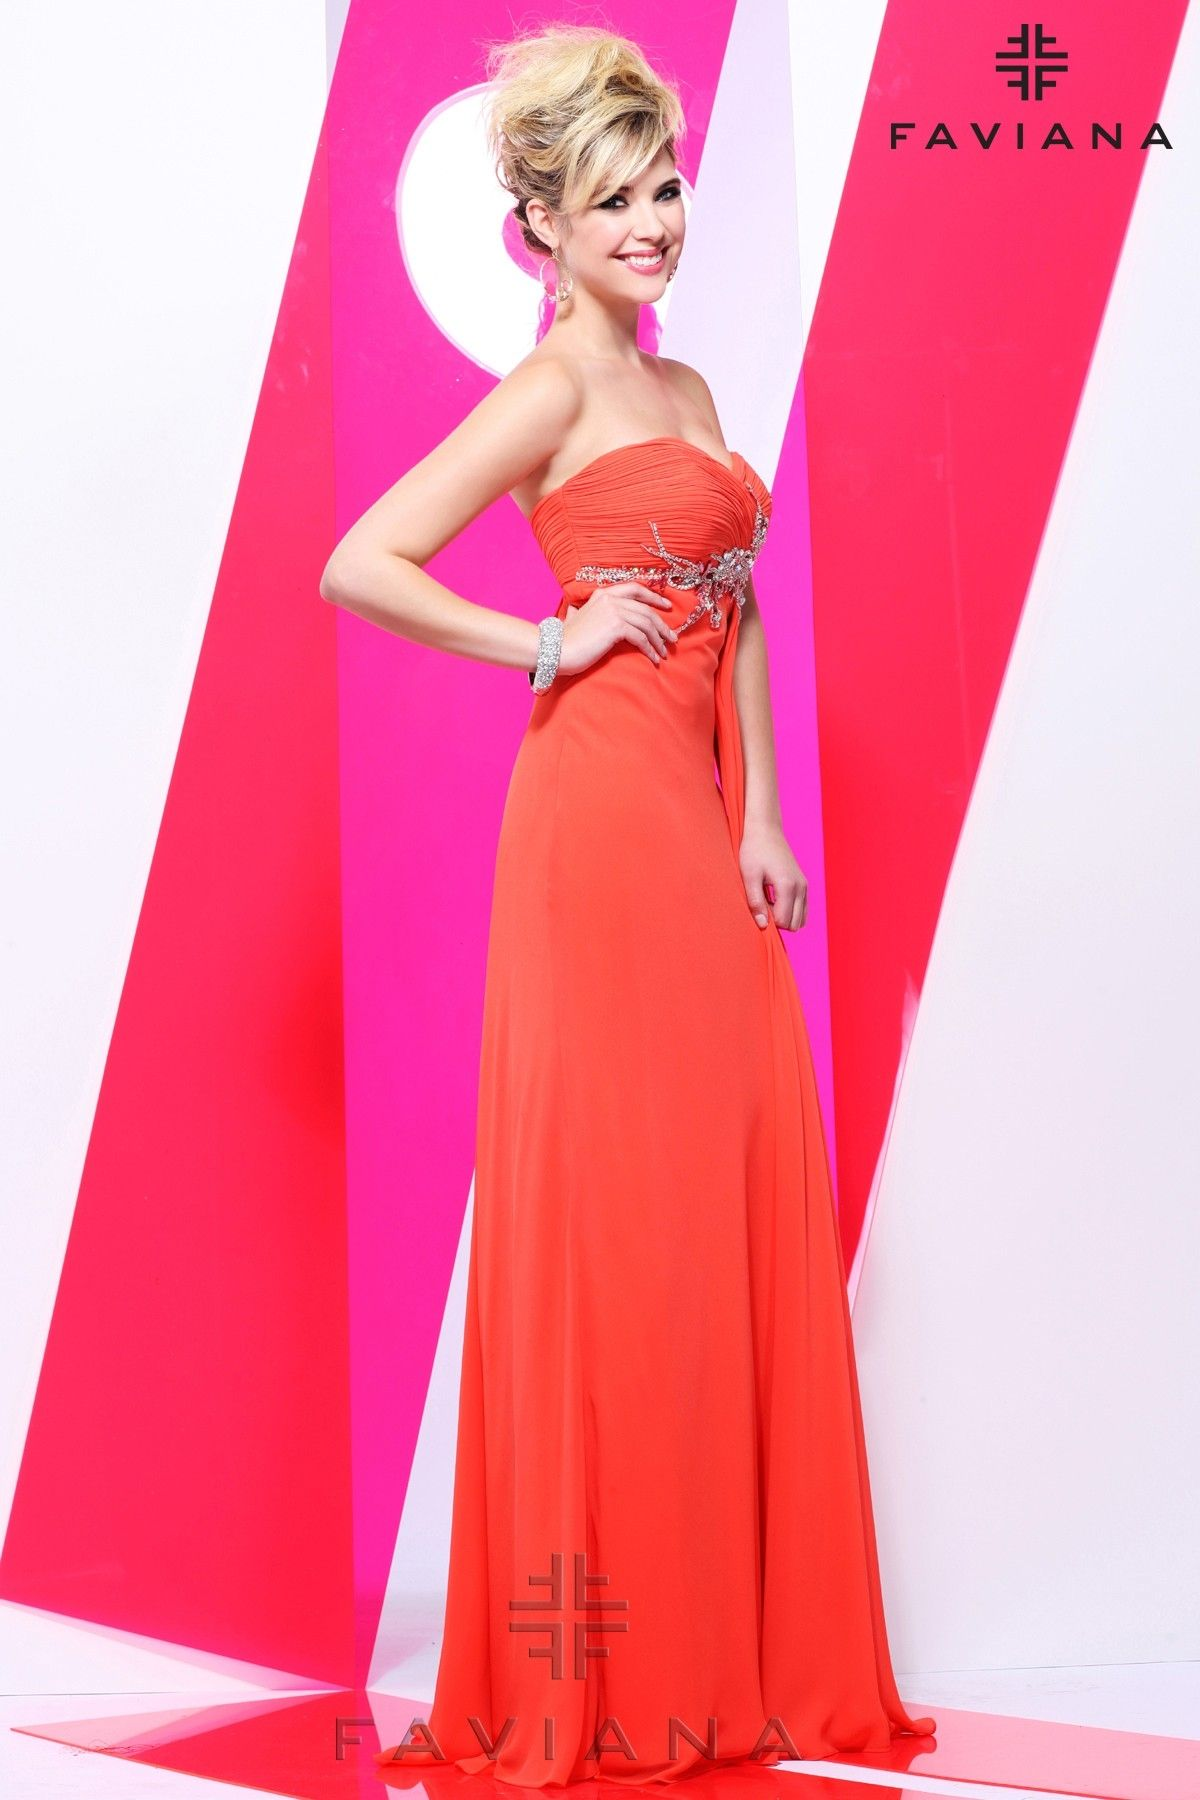 Style is a designer gown from the ashley benson collection